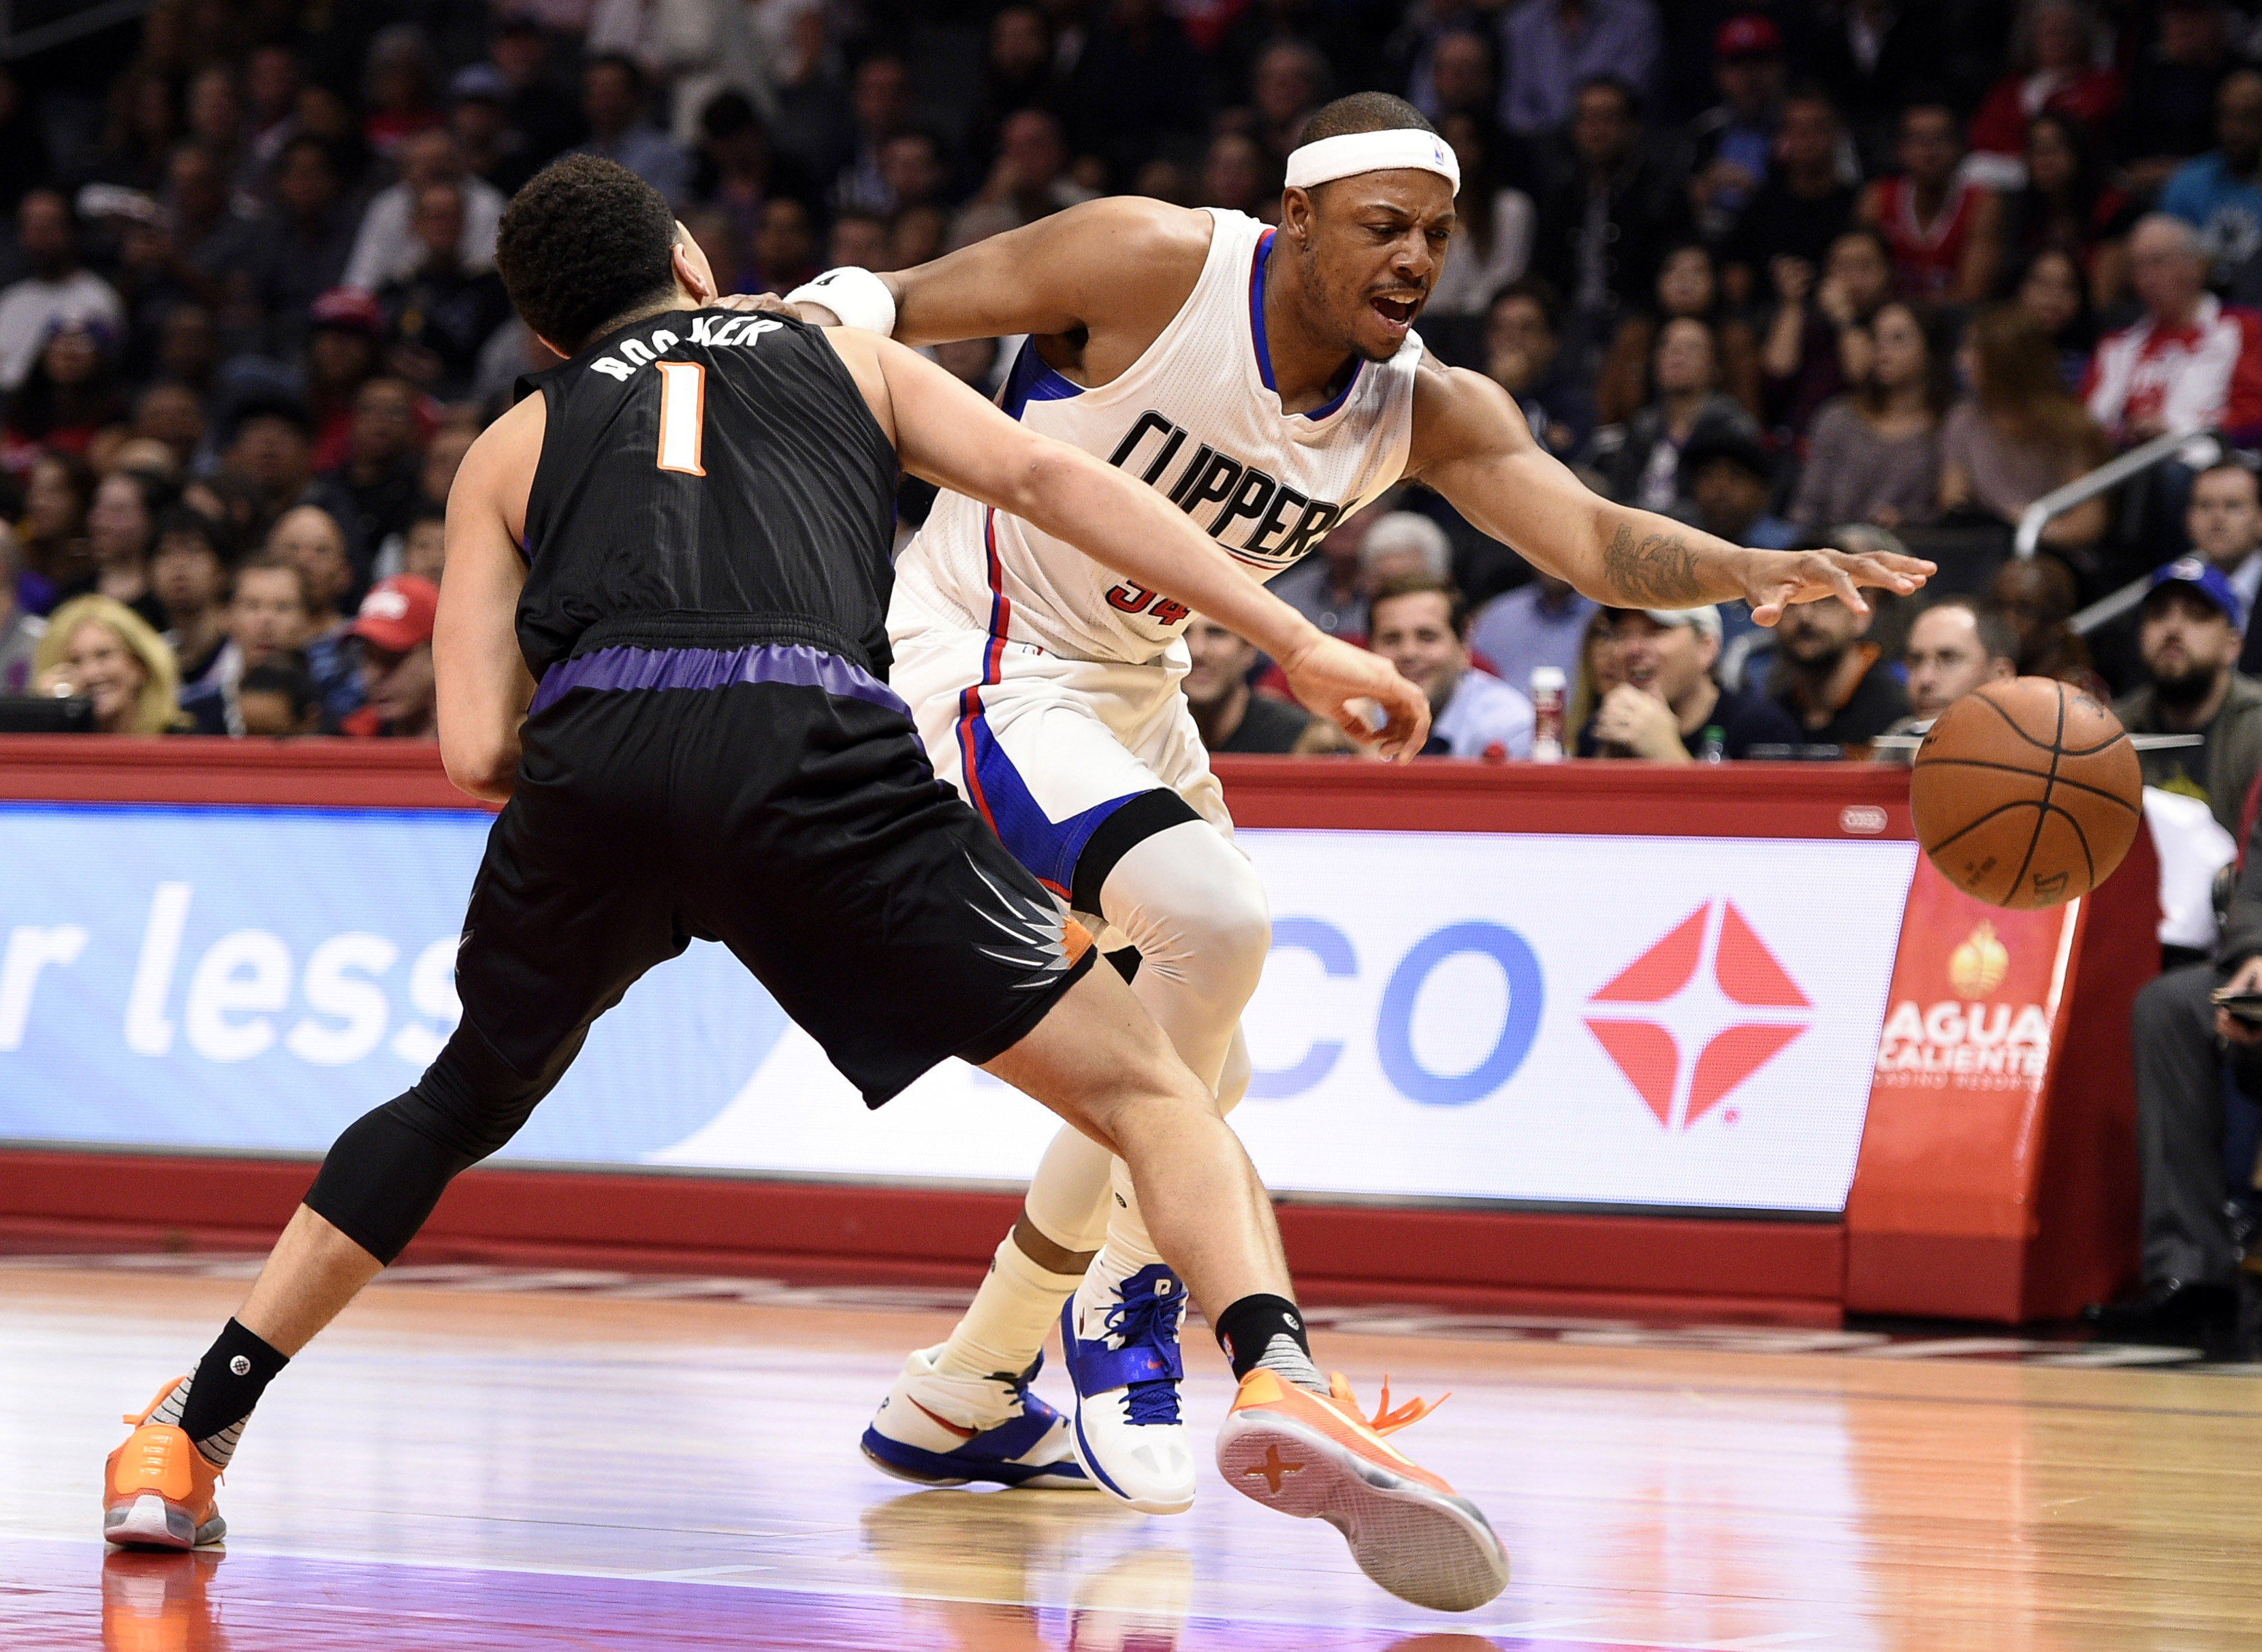 9132167-nba-phoenix-suns-at-los-angeles-clippers